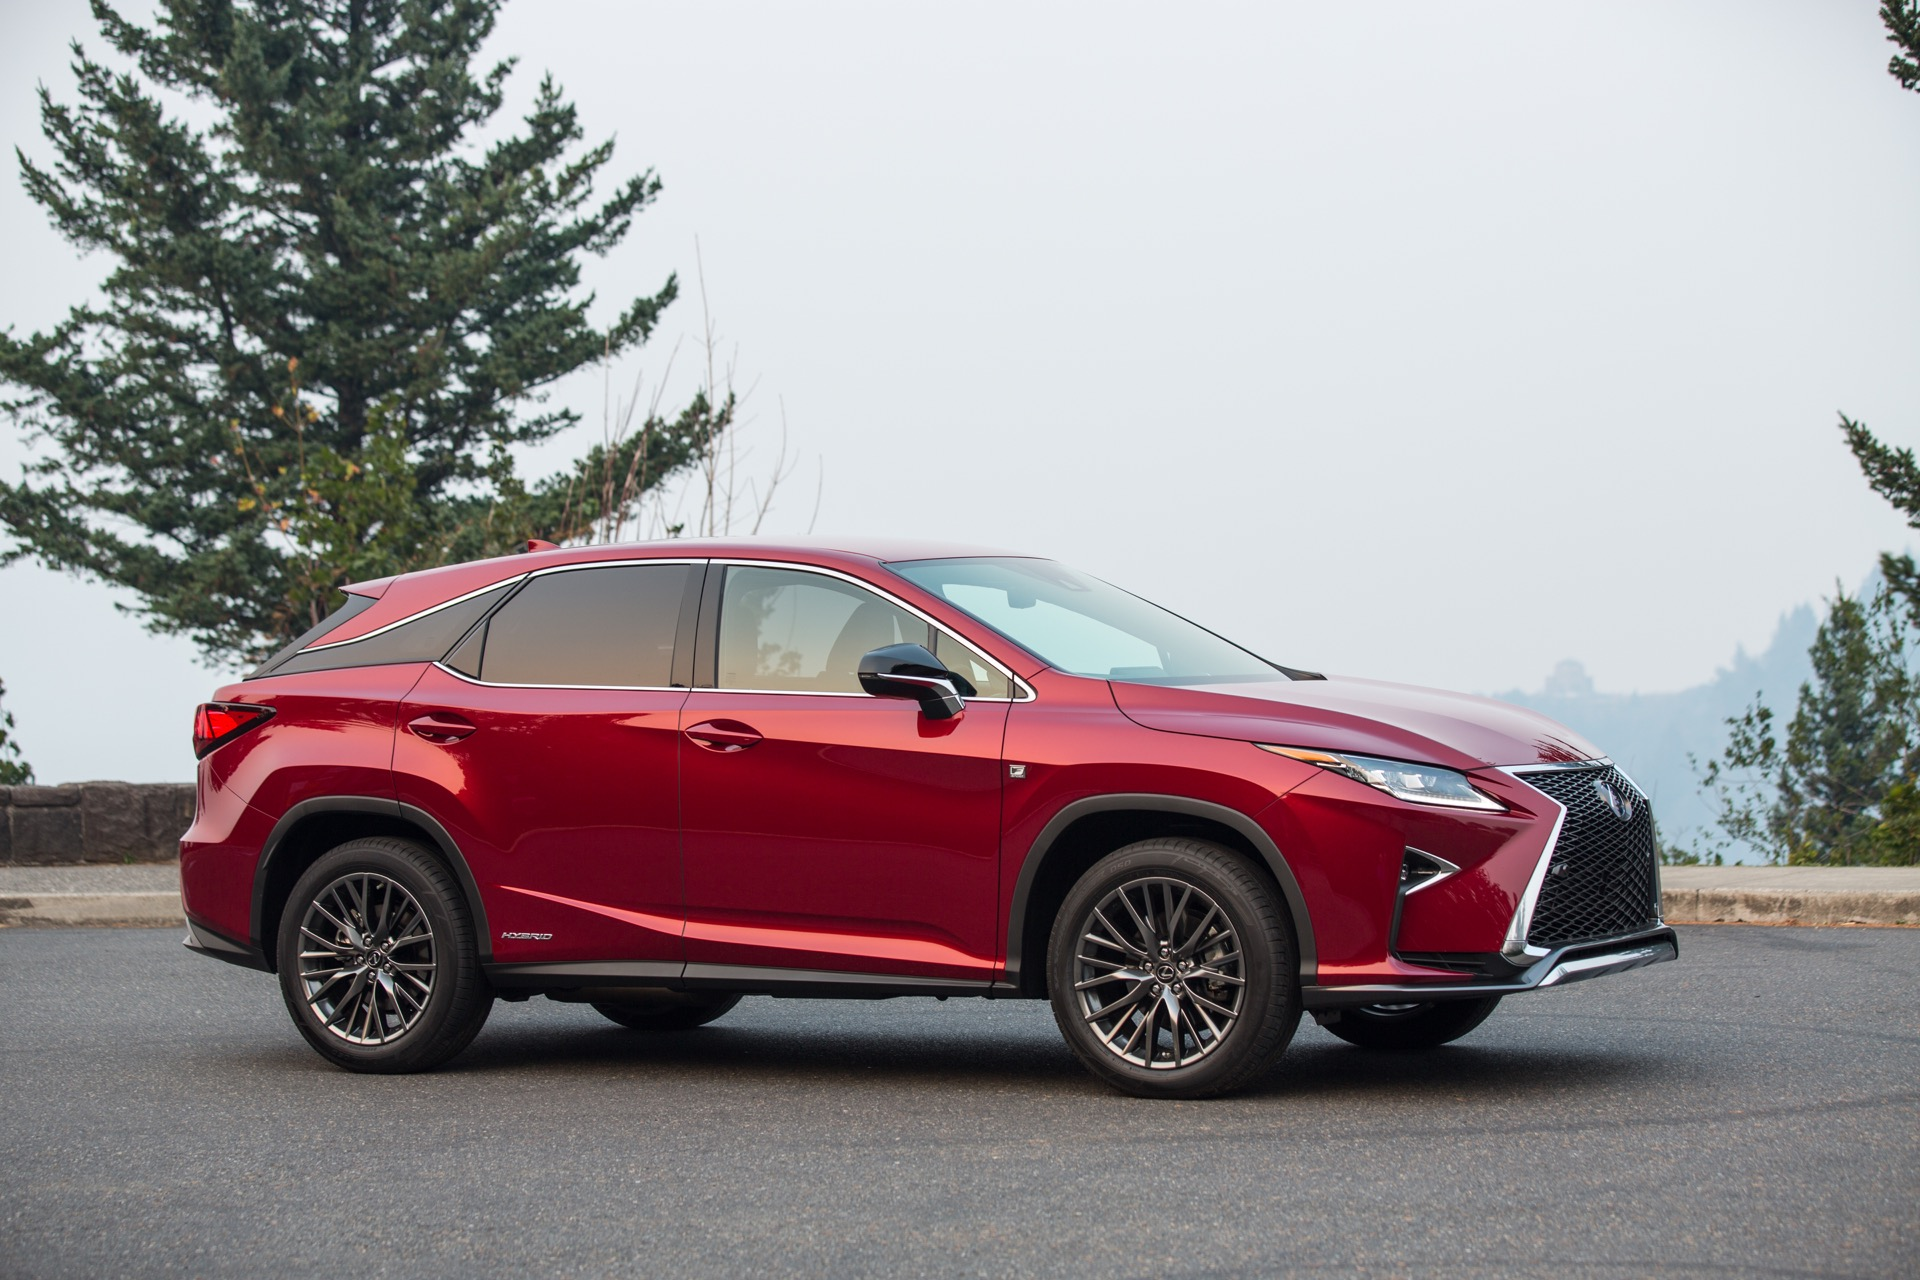 Lexus Rx With Third Row Seats Confirmed